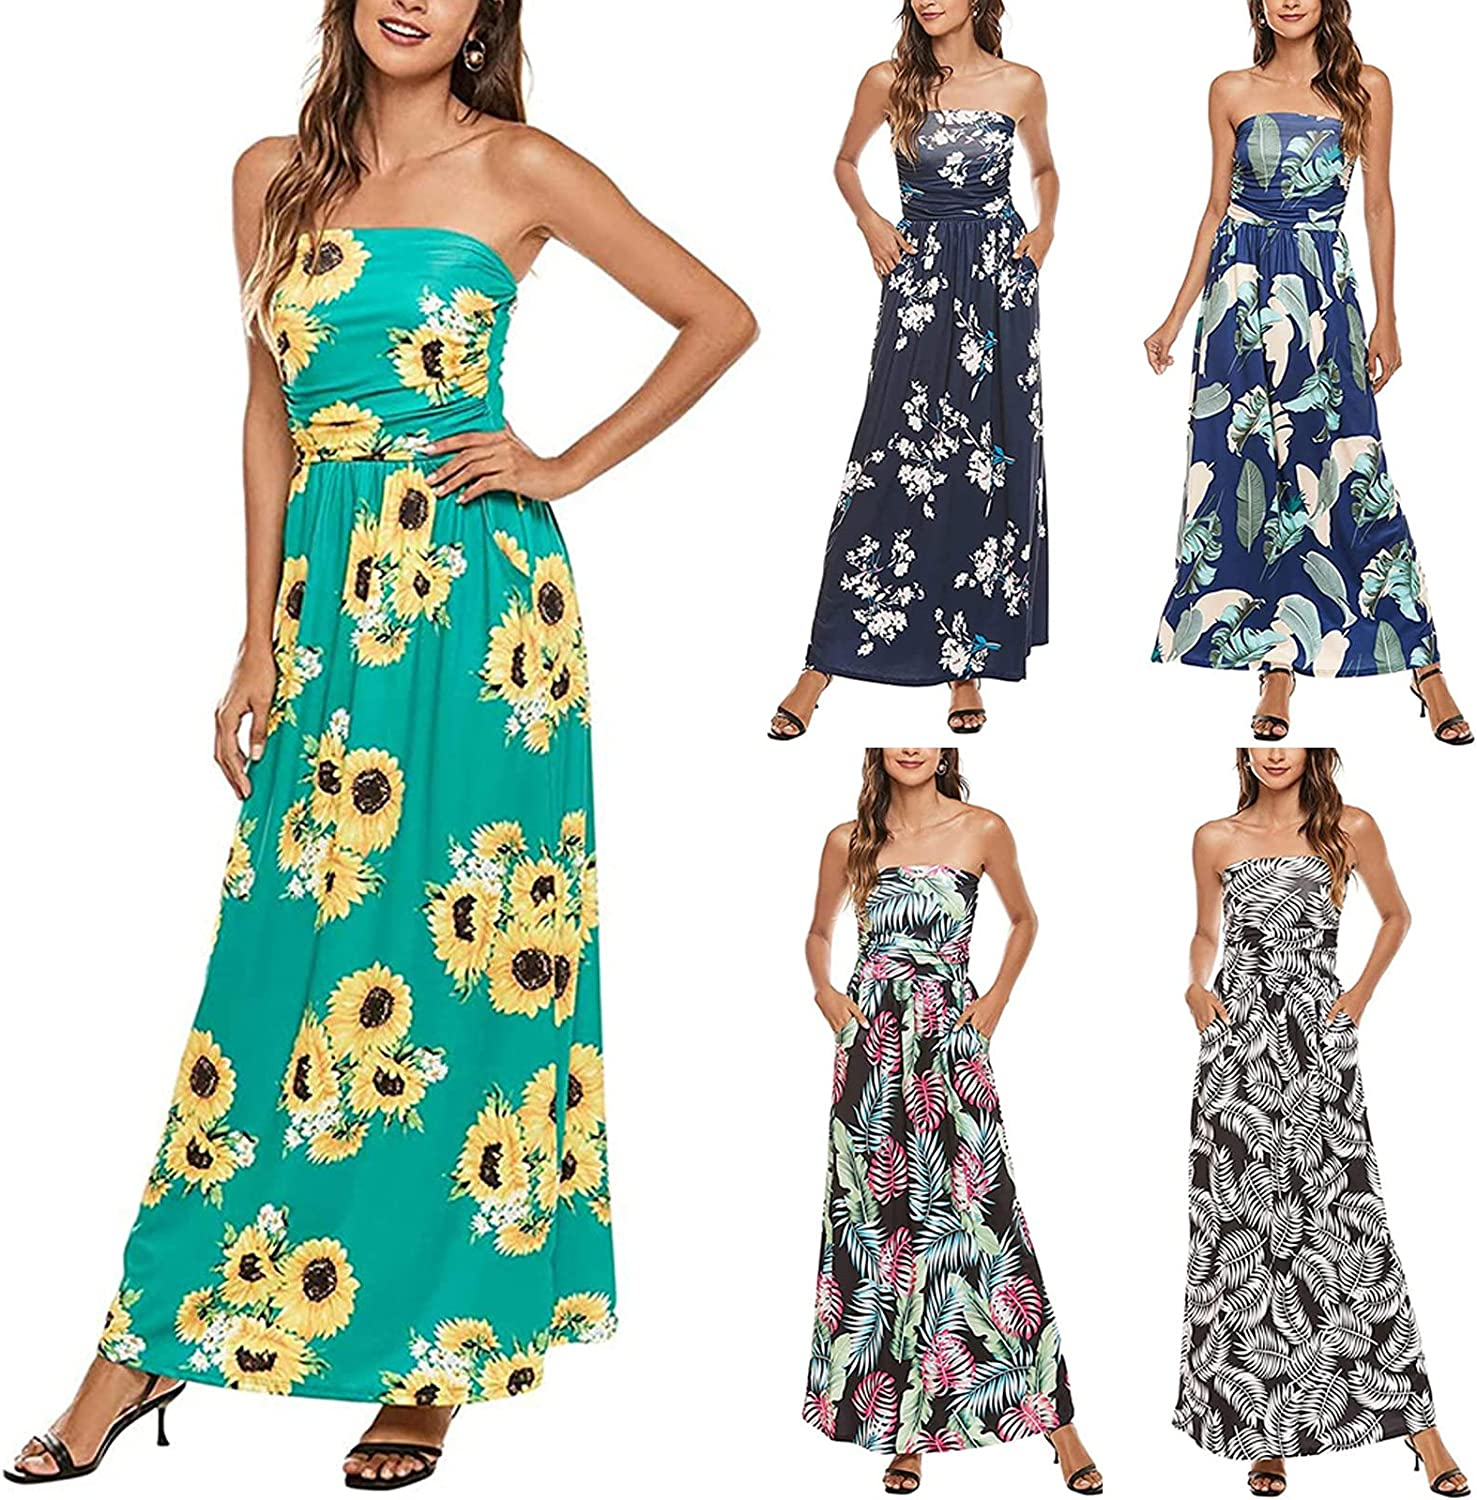 Women Sexy Strapless/Tube Top Maxi Long Dresses Causal Sleeveless Floral Printed Pleated Tunic Pocket Beach Sundress